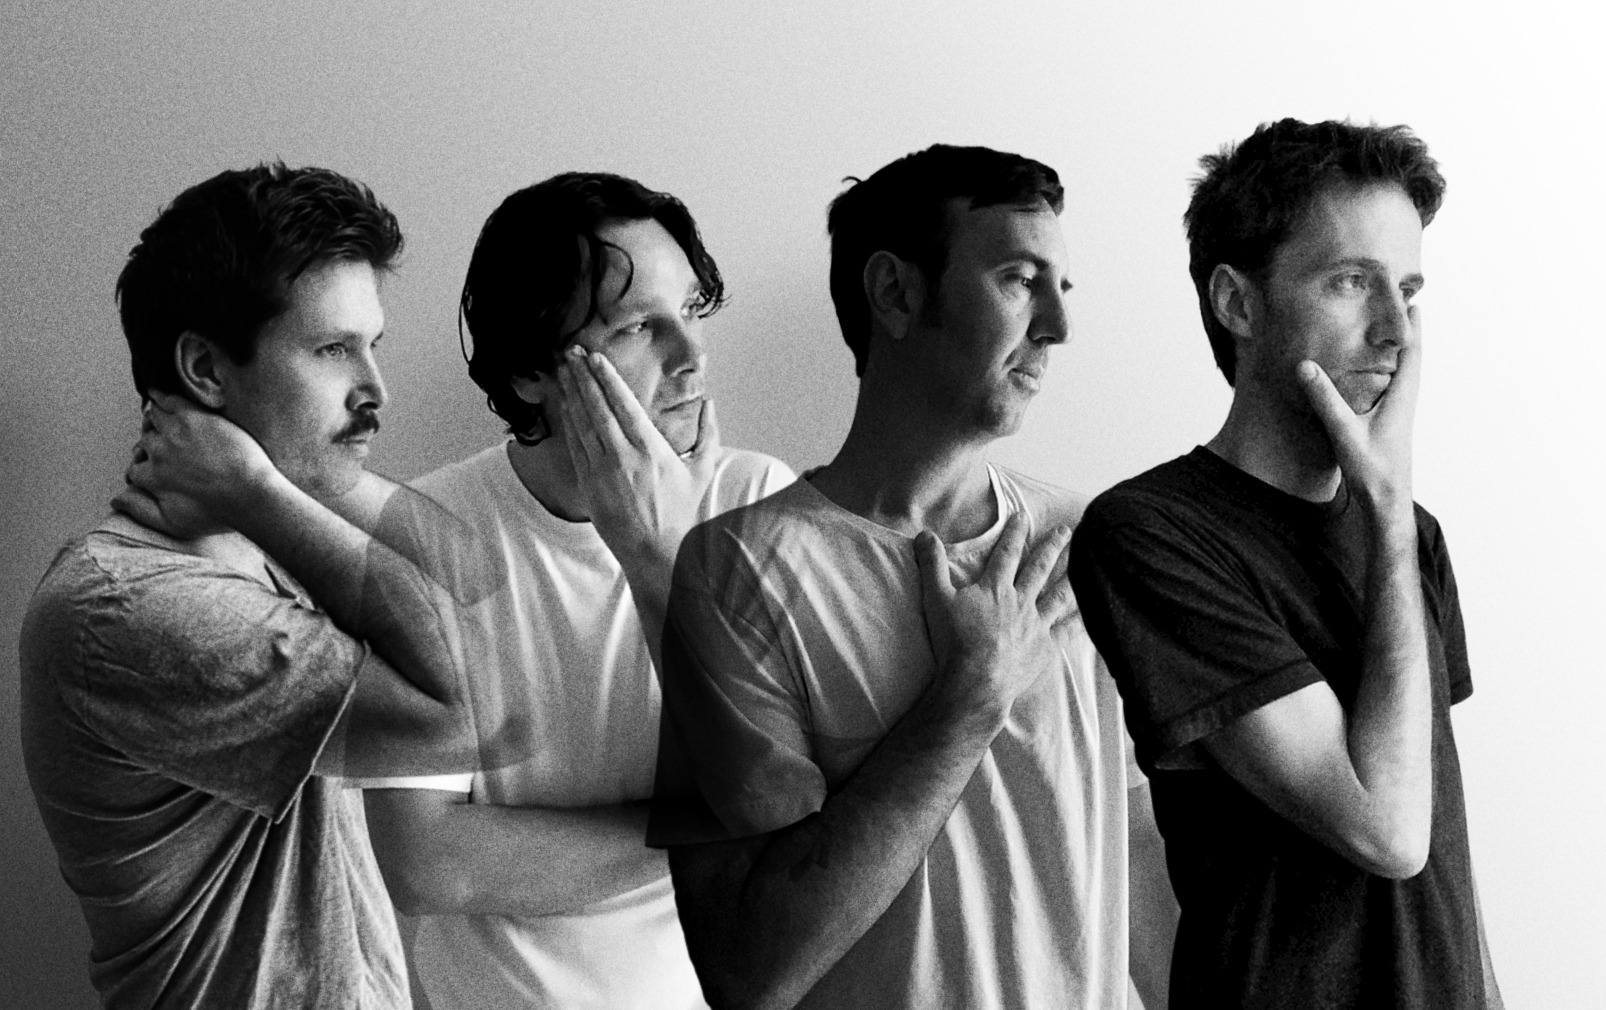 CUT COPY announce sixth studio album 'Freeze, Melt' and share new single 'Cold Water' 1